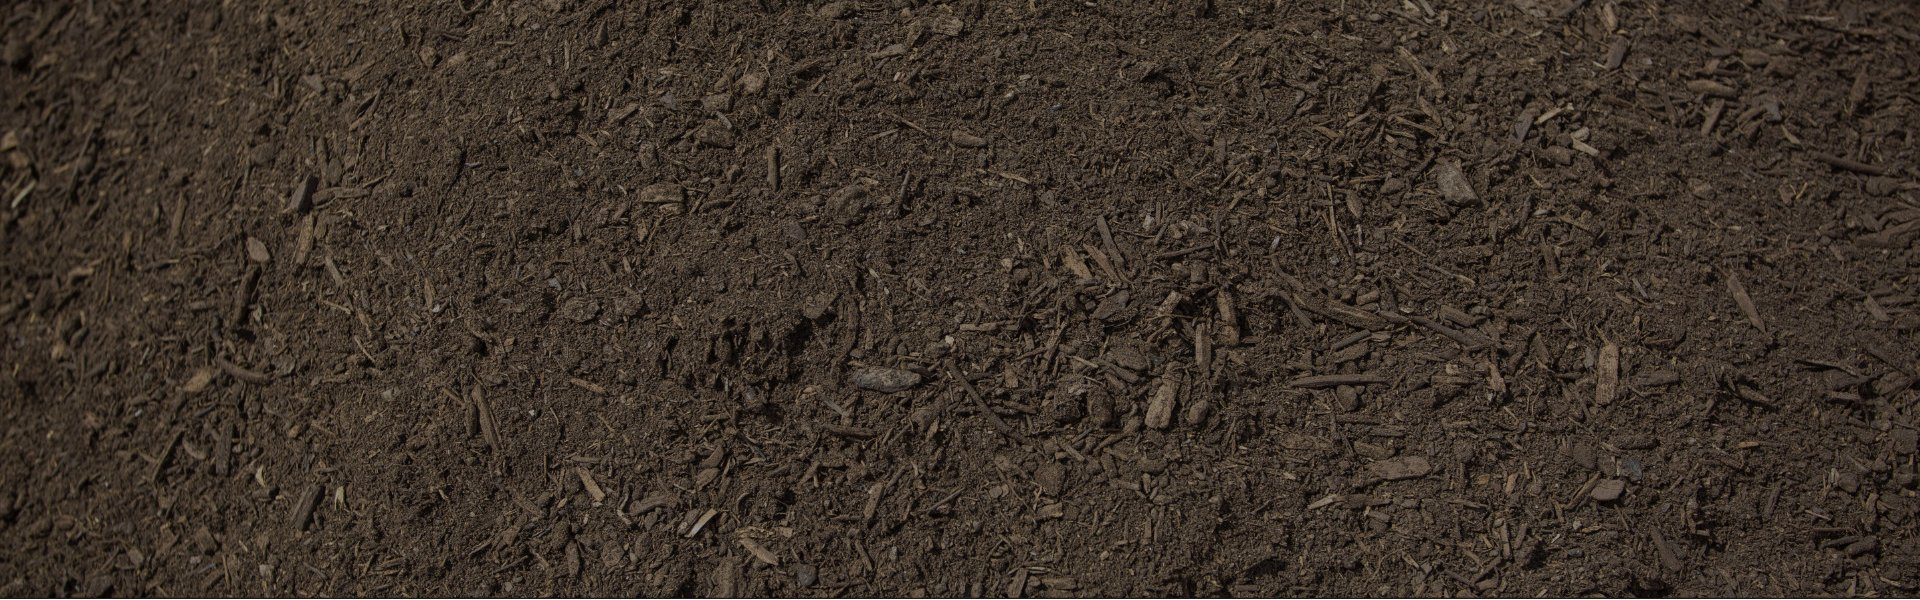 WE DELIVER MULCH and TOPSOIL THAT WILL MAKE YOUR NEIGHBORS JEALOUS – CALL NOW!